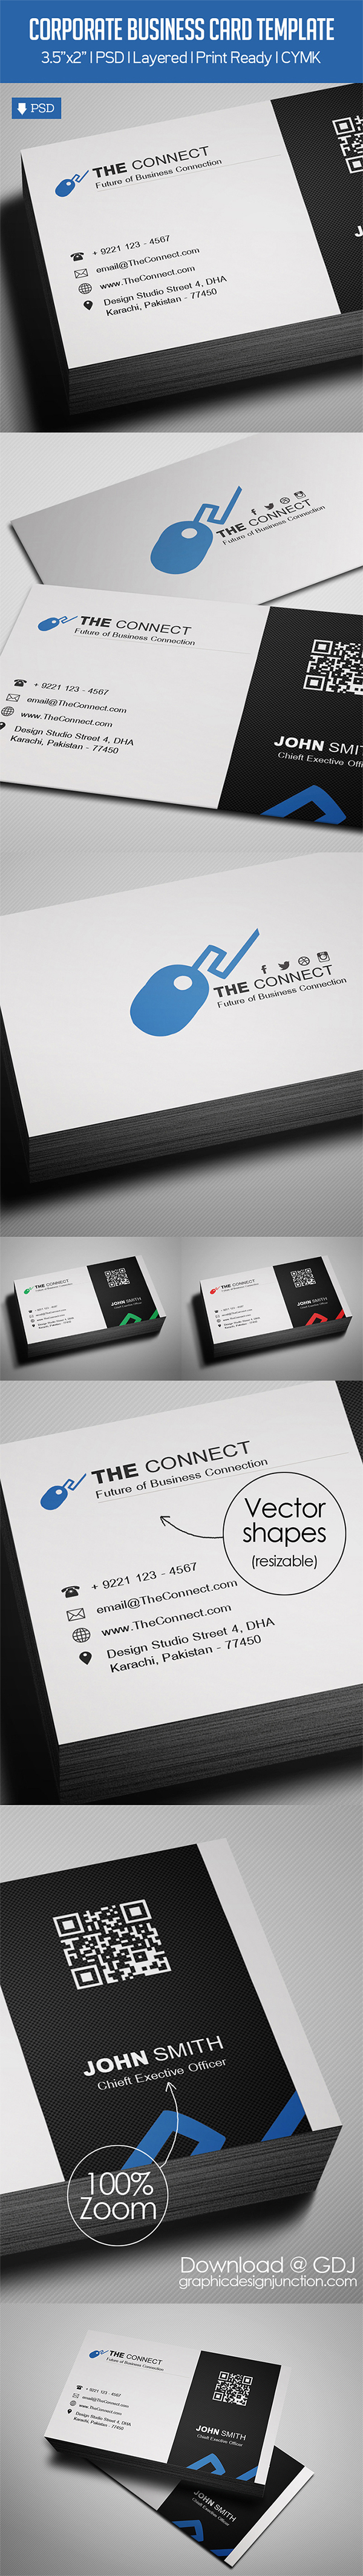 Awesome & Stylish Business Card Template Free Download (PSD)